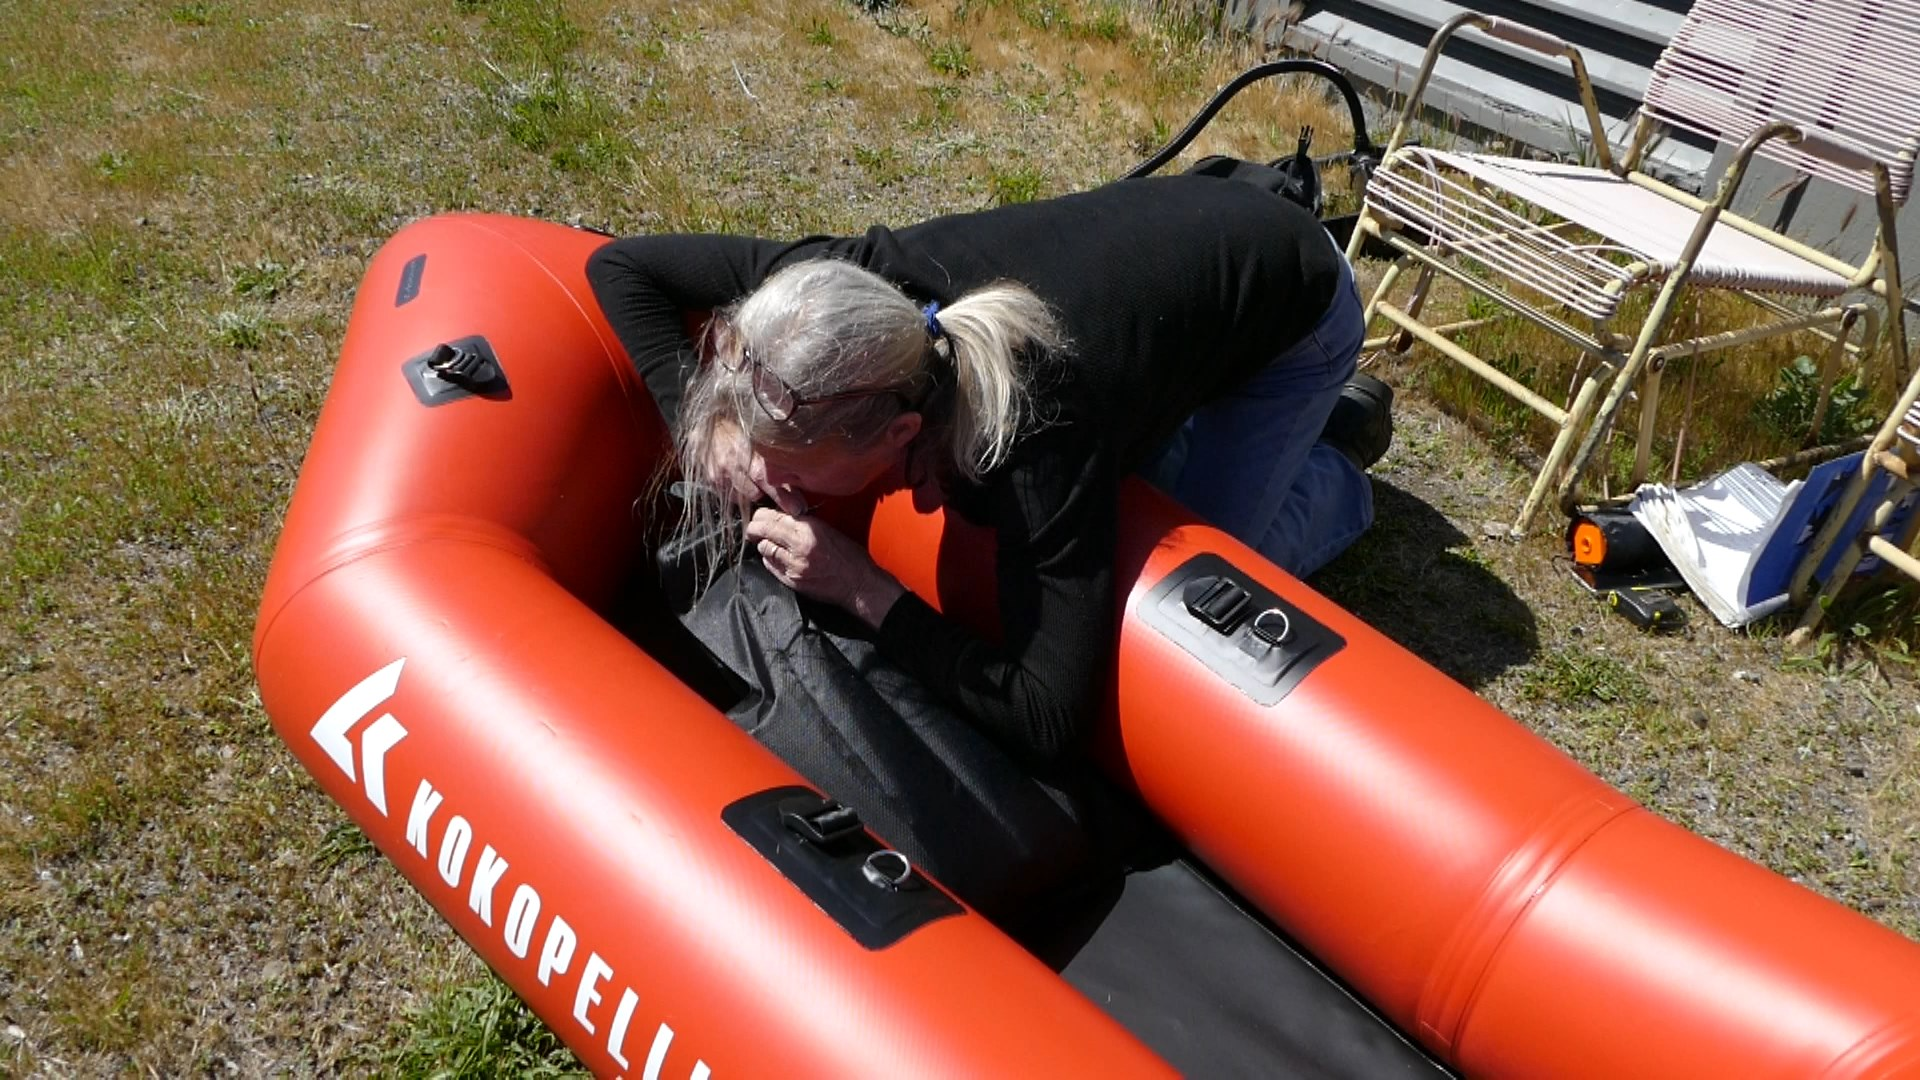 Inflating the seat base